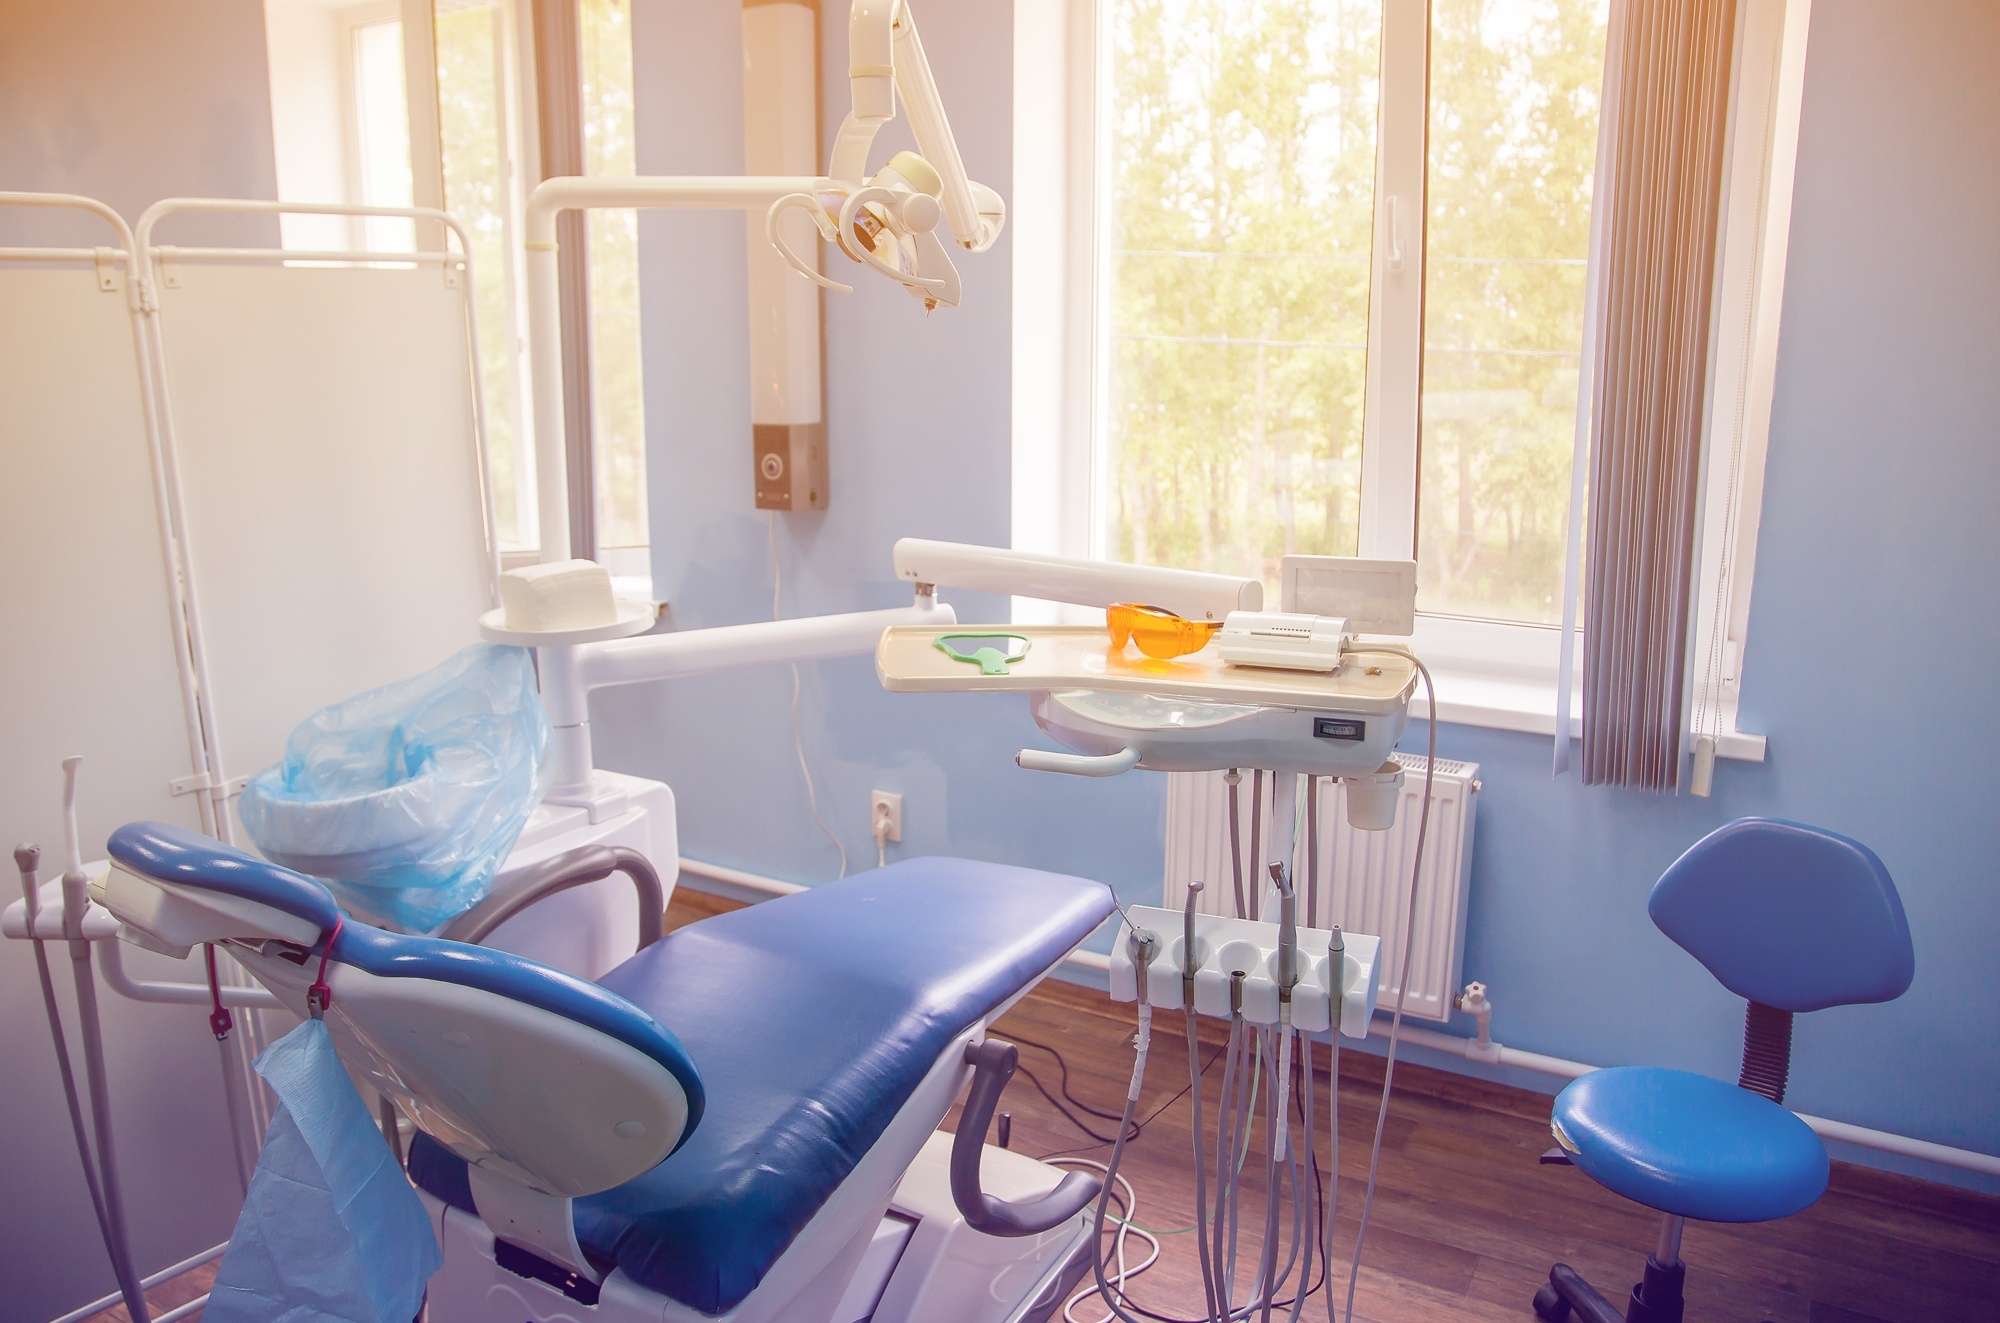 Tips for running a successful dental practice